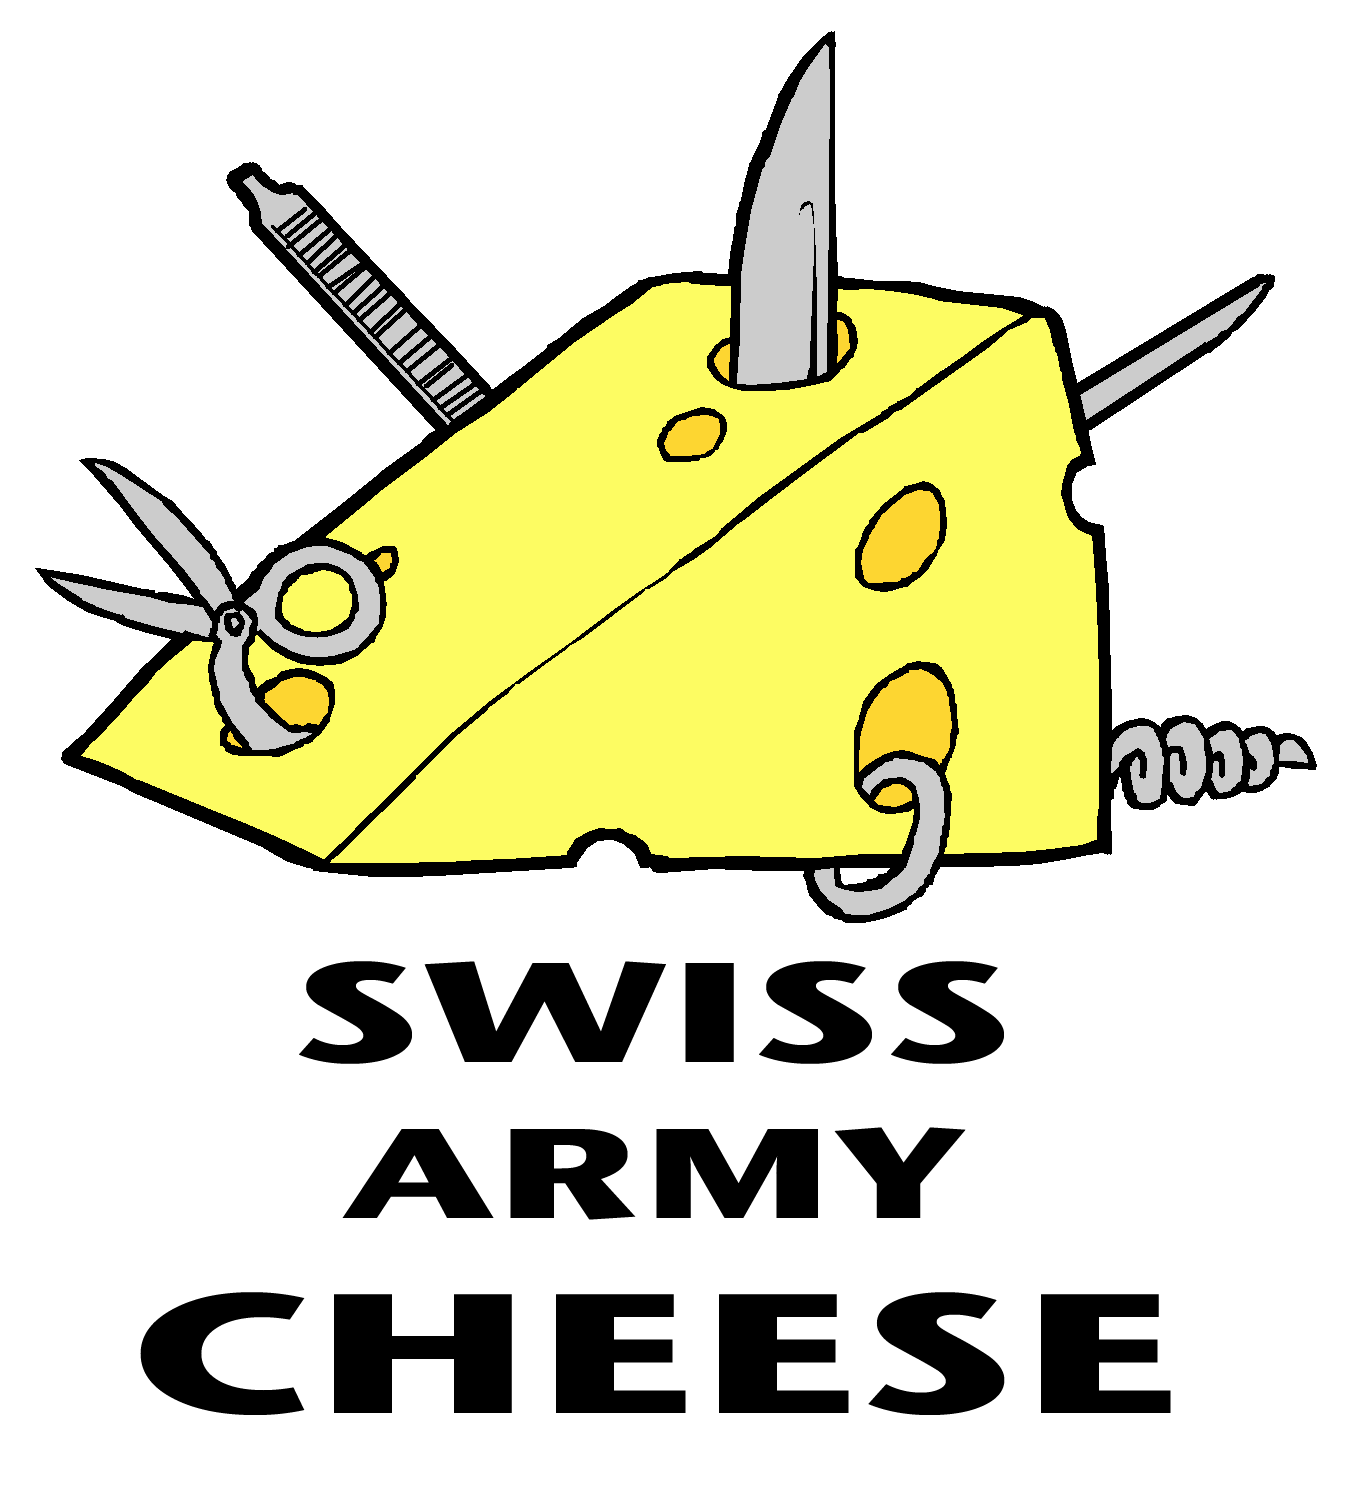 Swiss Army Cheese By Hail